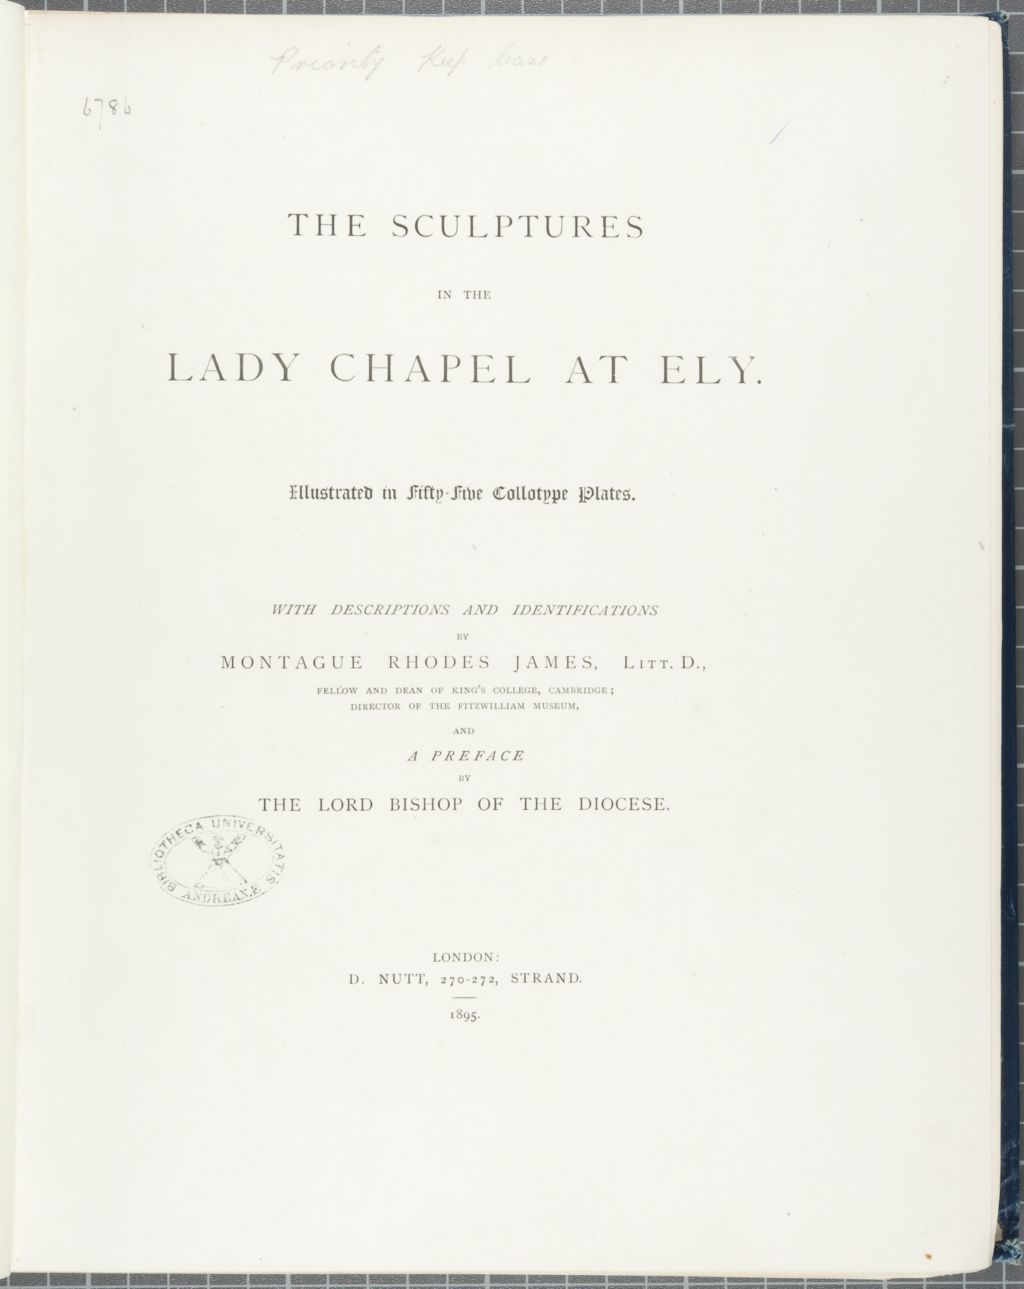 The sculptures in the Lady Chapel at Ely illustrated with fifty-five collotype plates